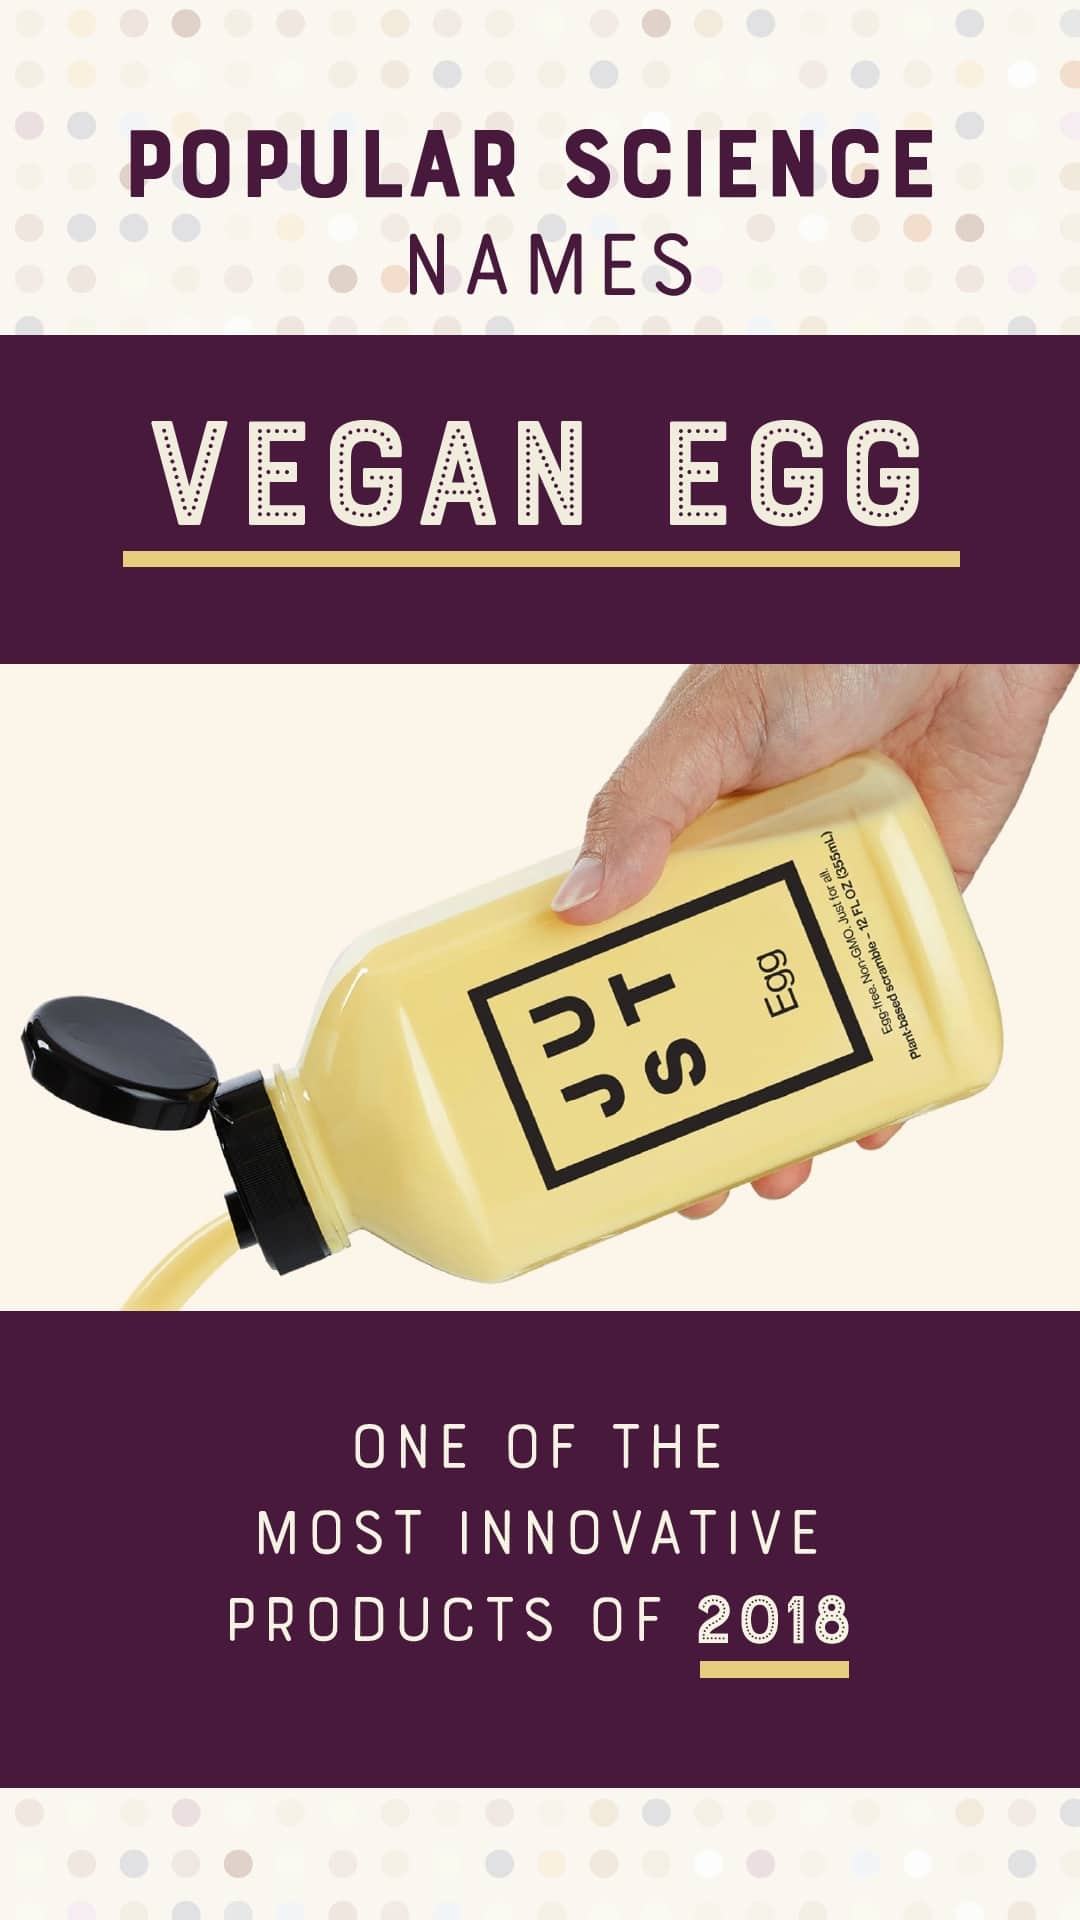 Popular Science Names Vegan Egg One of the Most Innovative Products of 2018